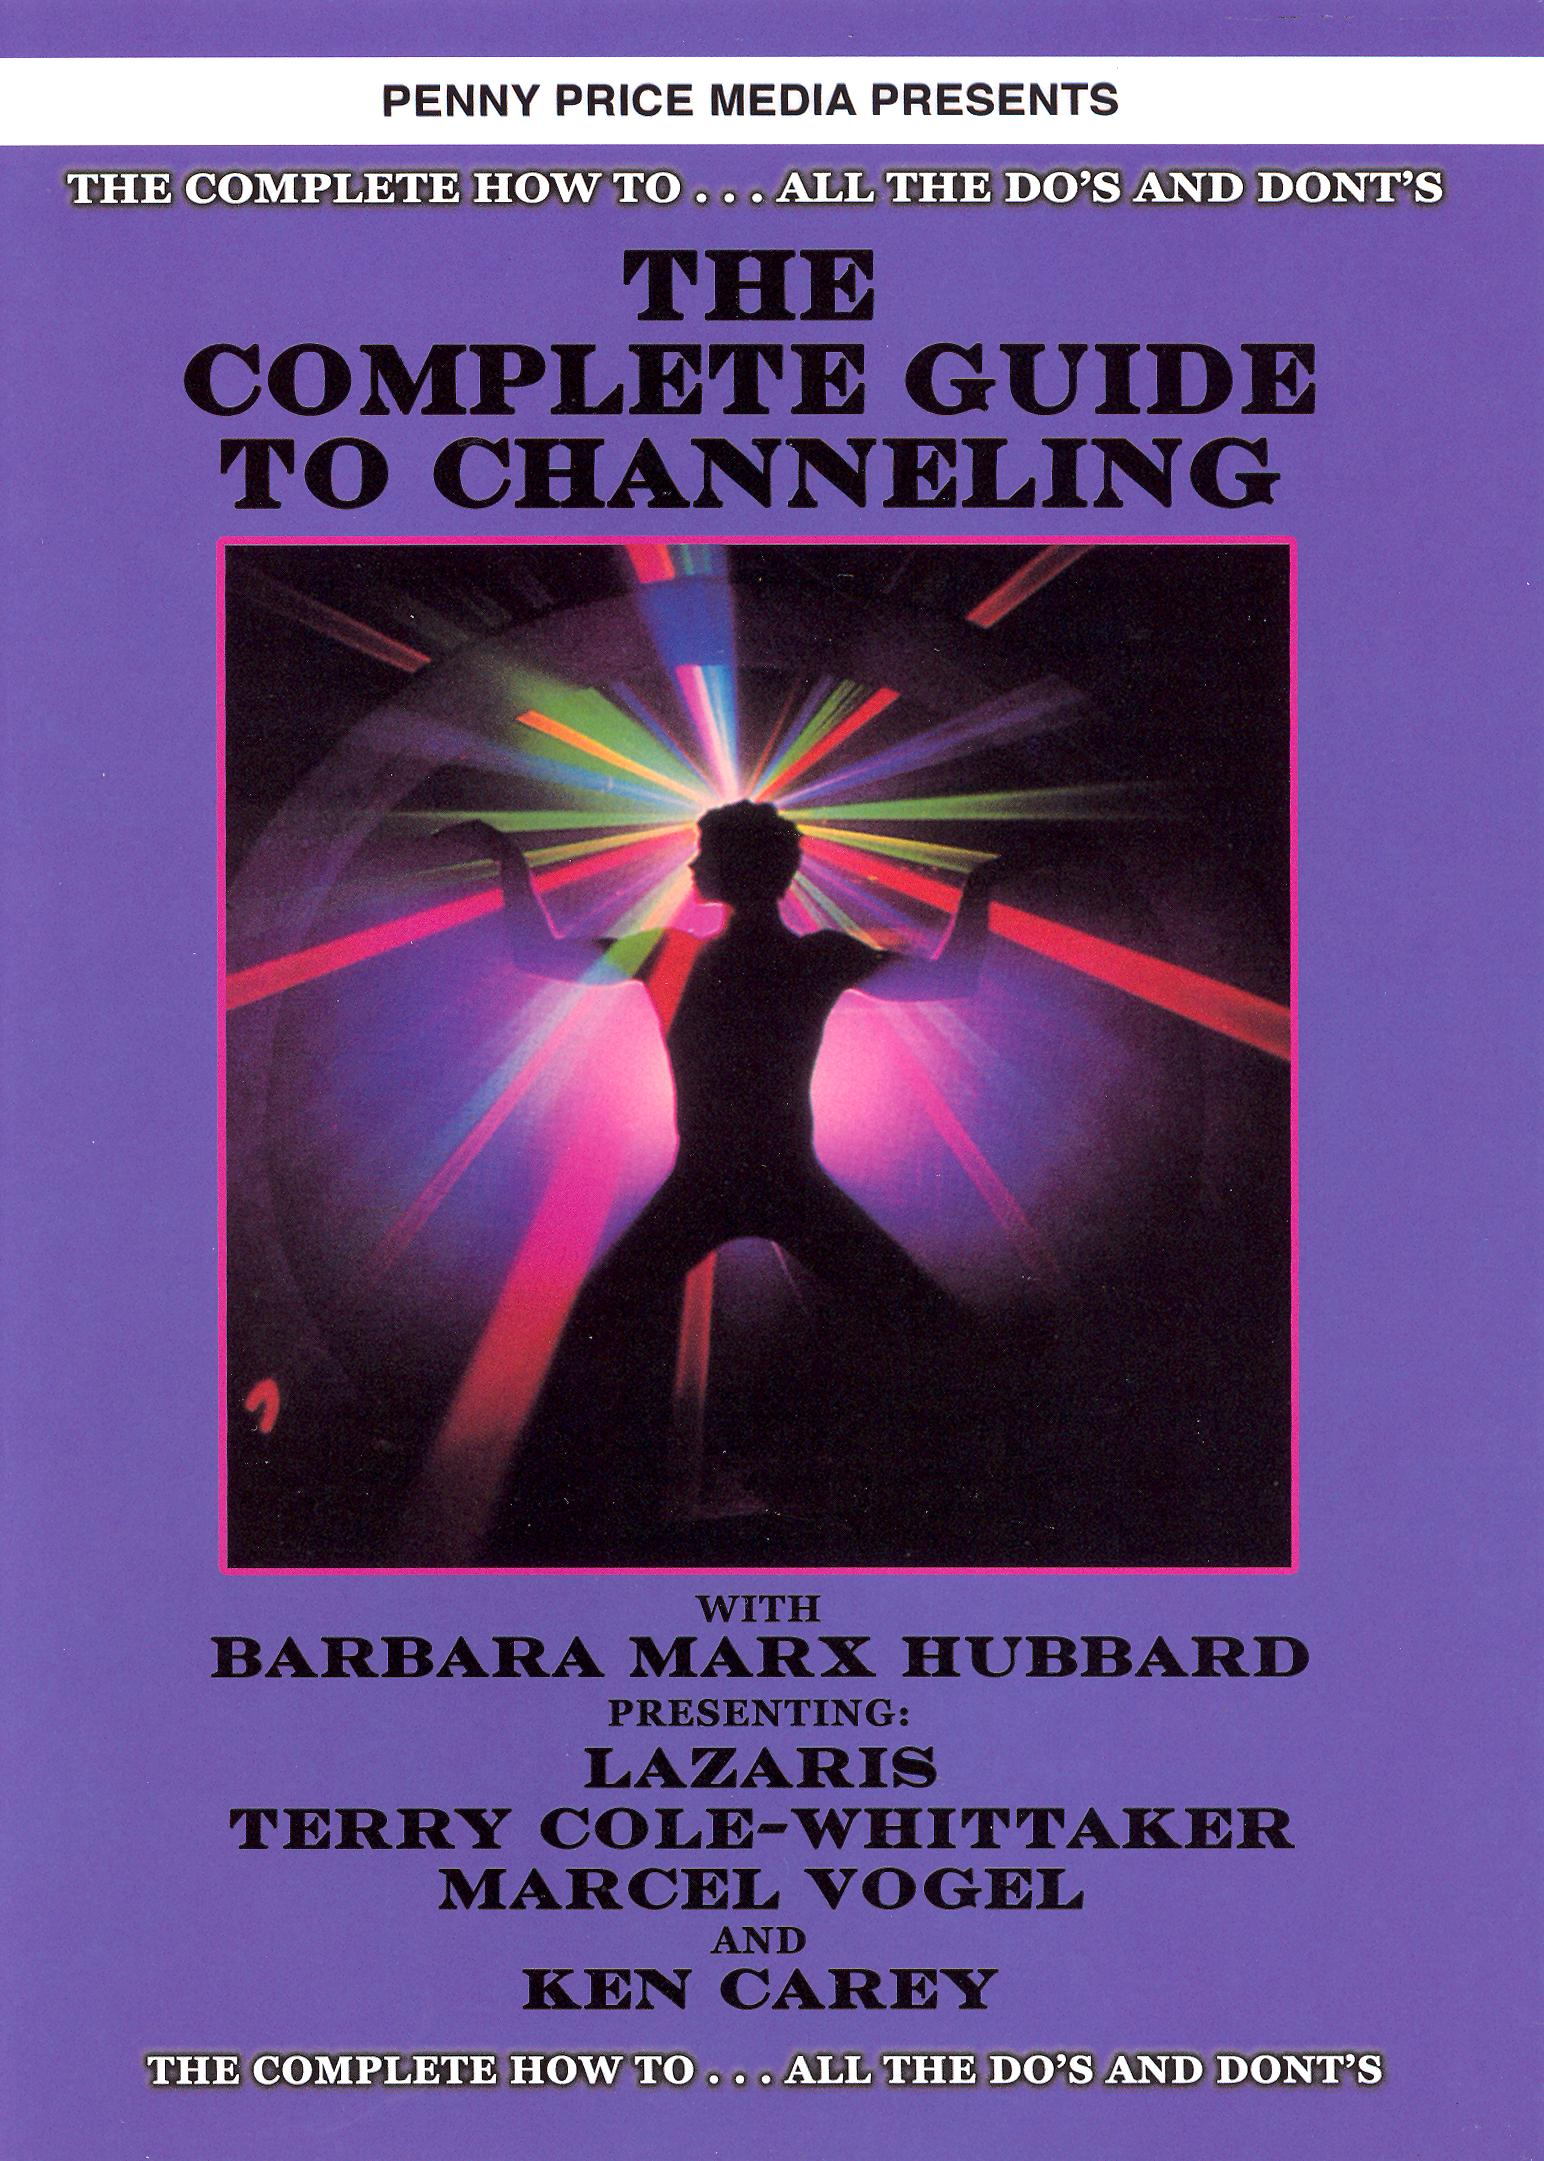 The Complete Guide to Channeling